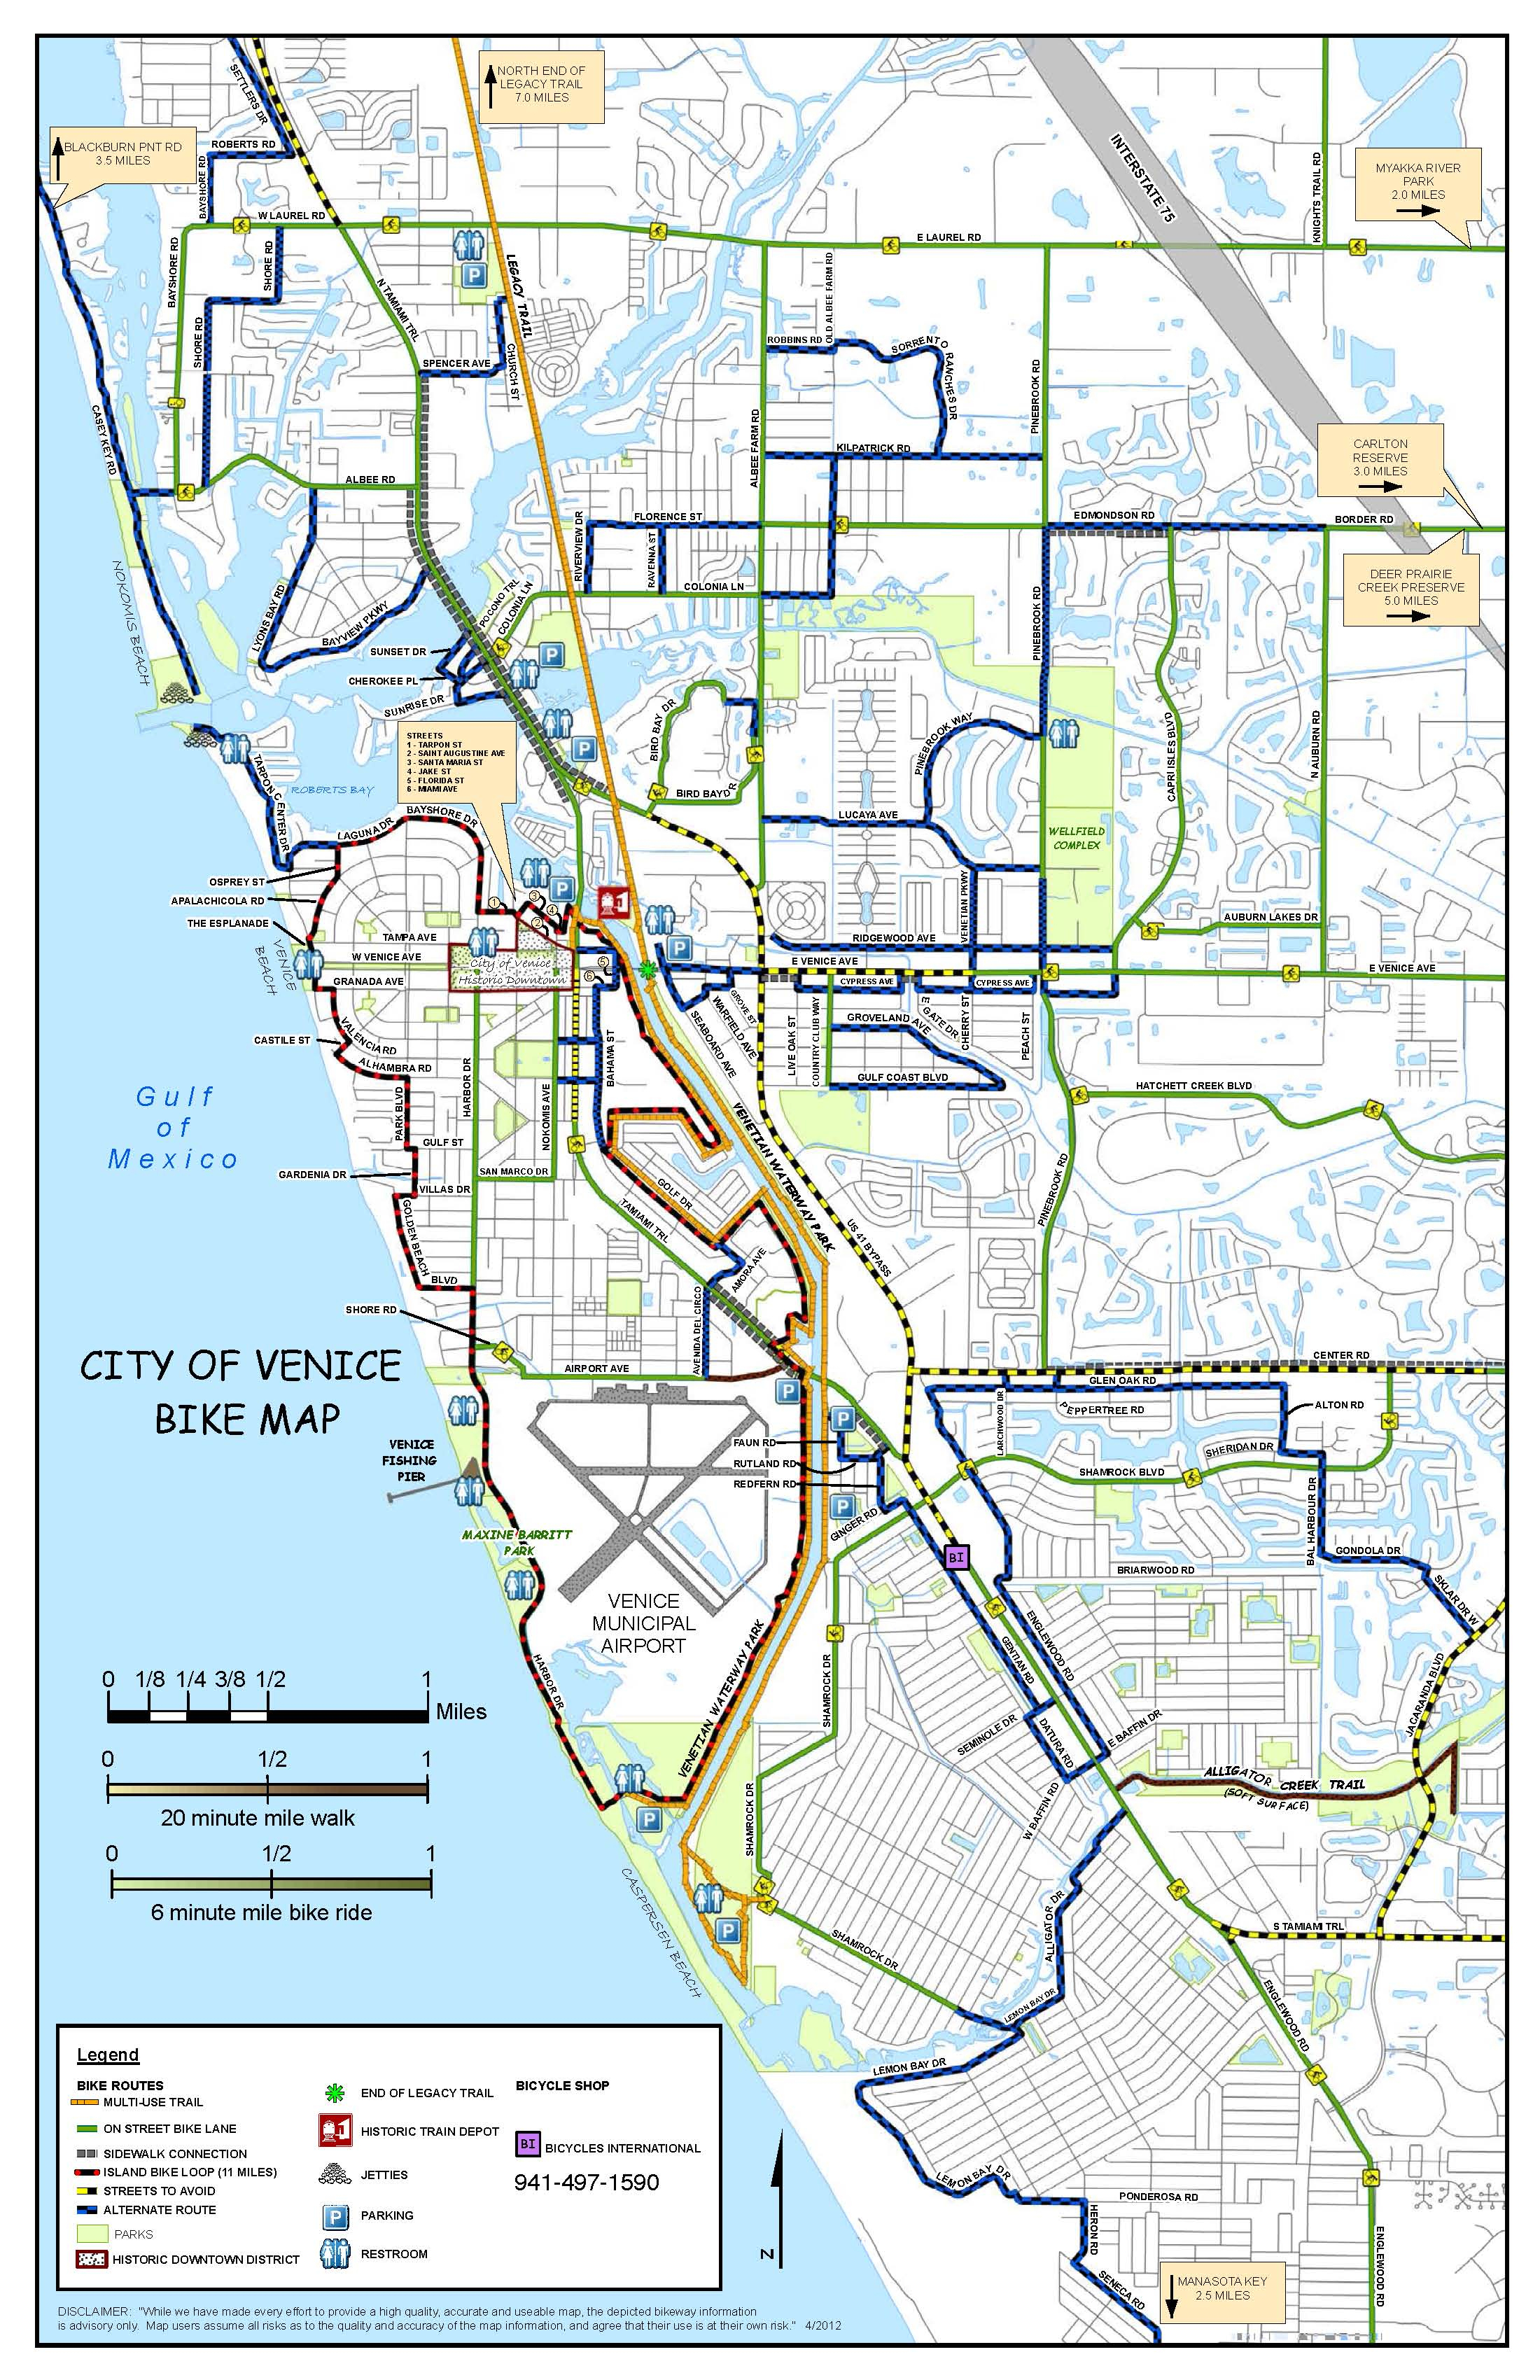 Where To Ride | Bicycles International | Bike Sales & Repair - Florida Bike Trails Map